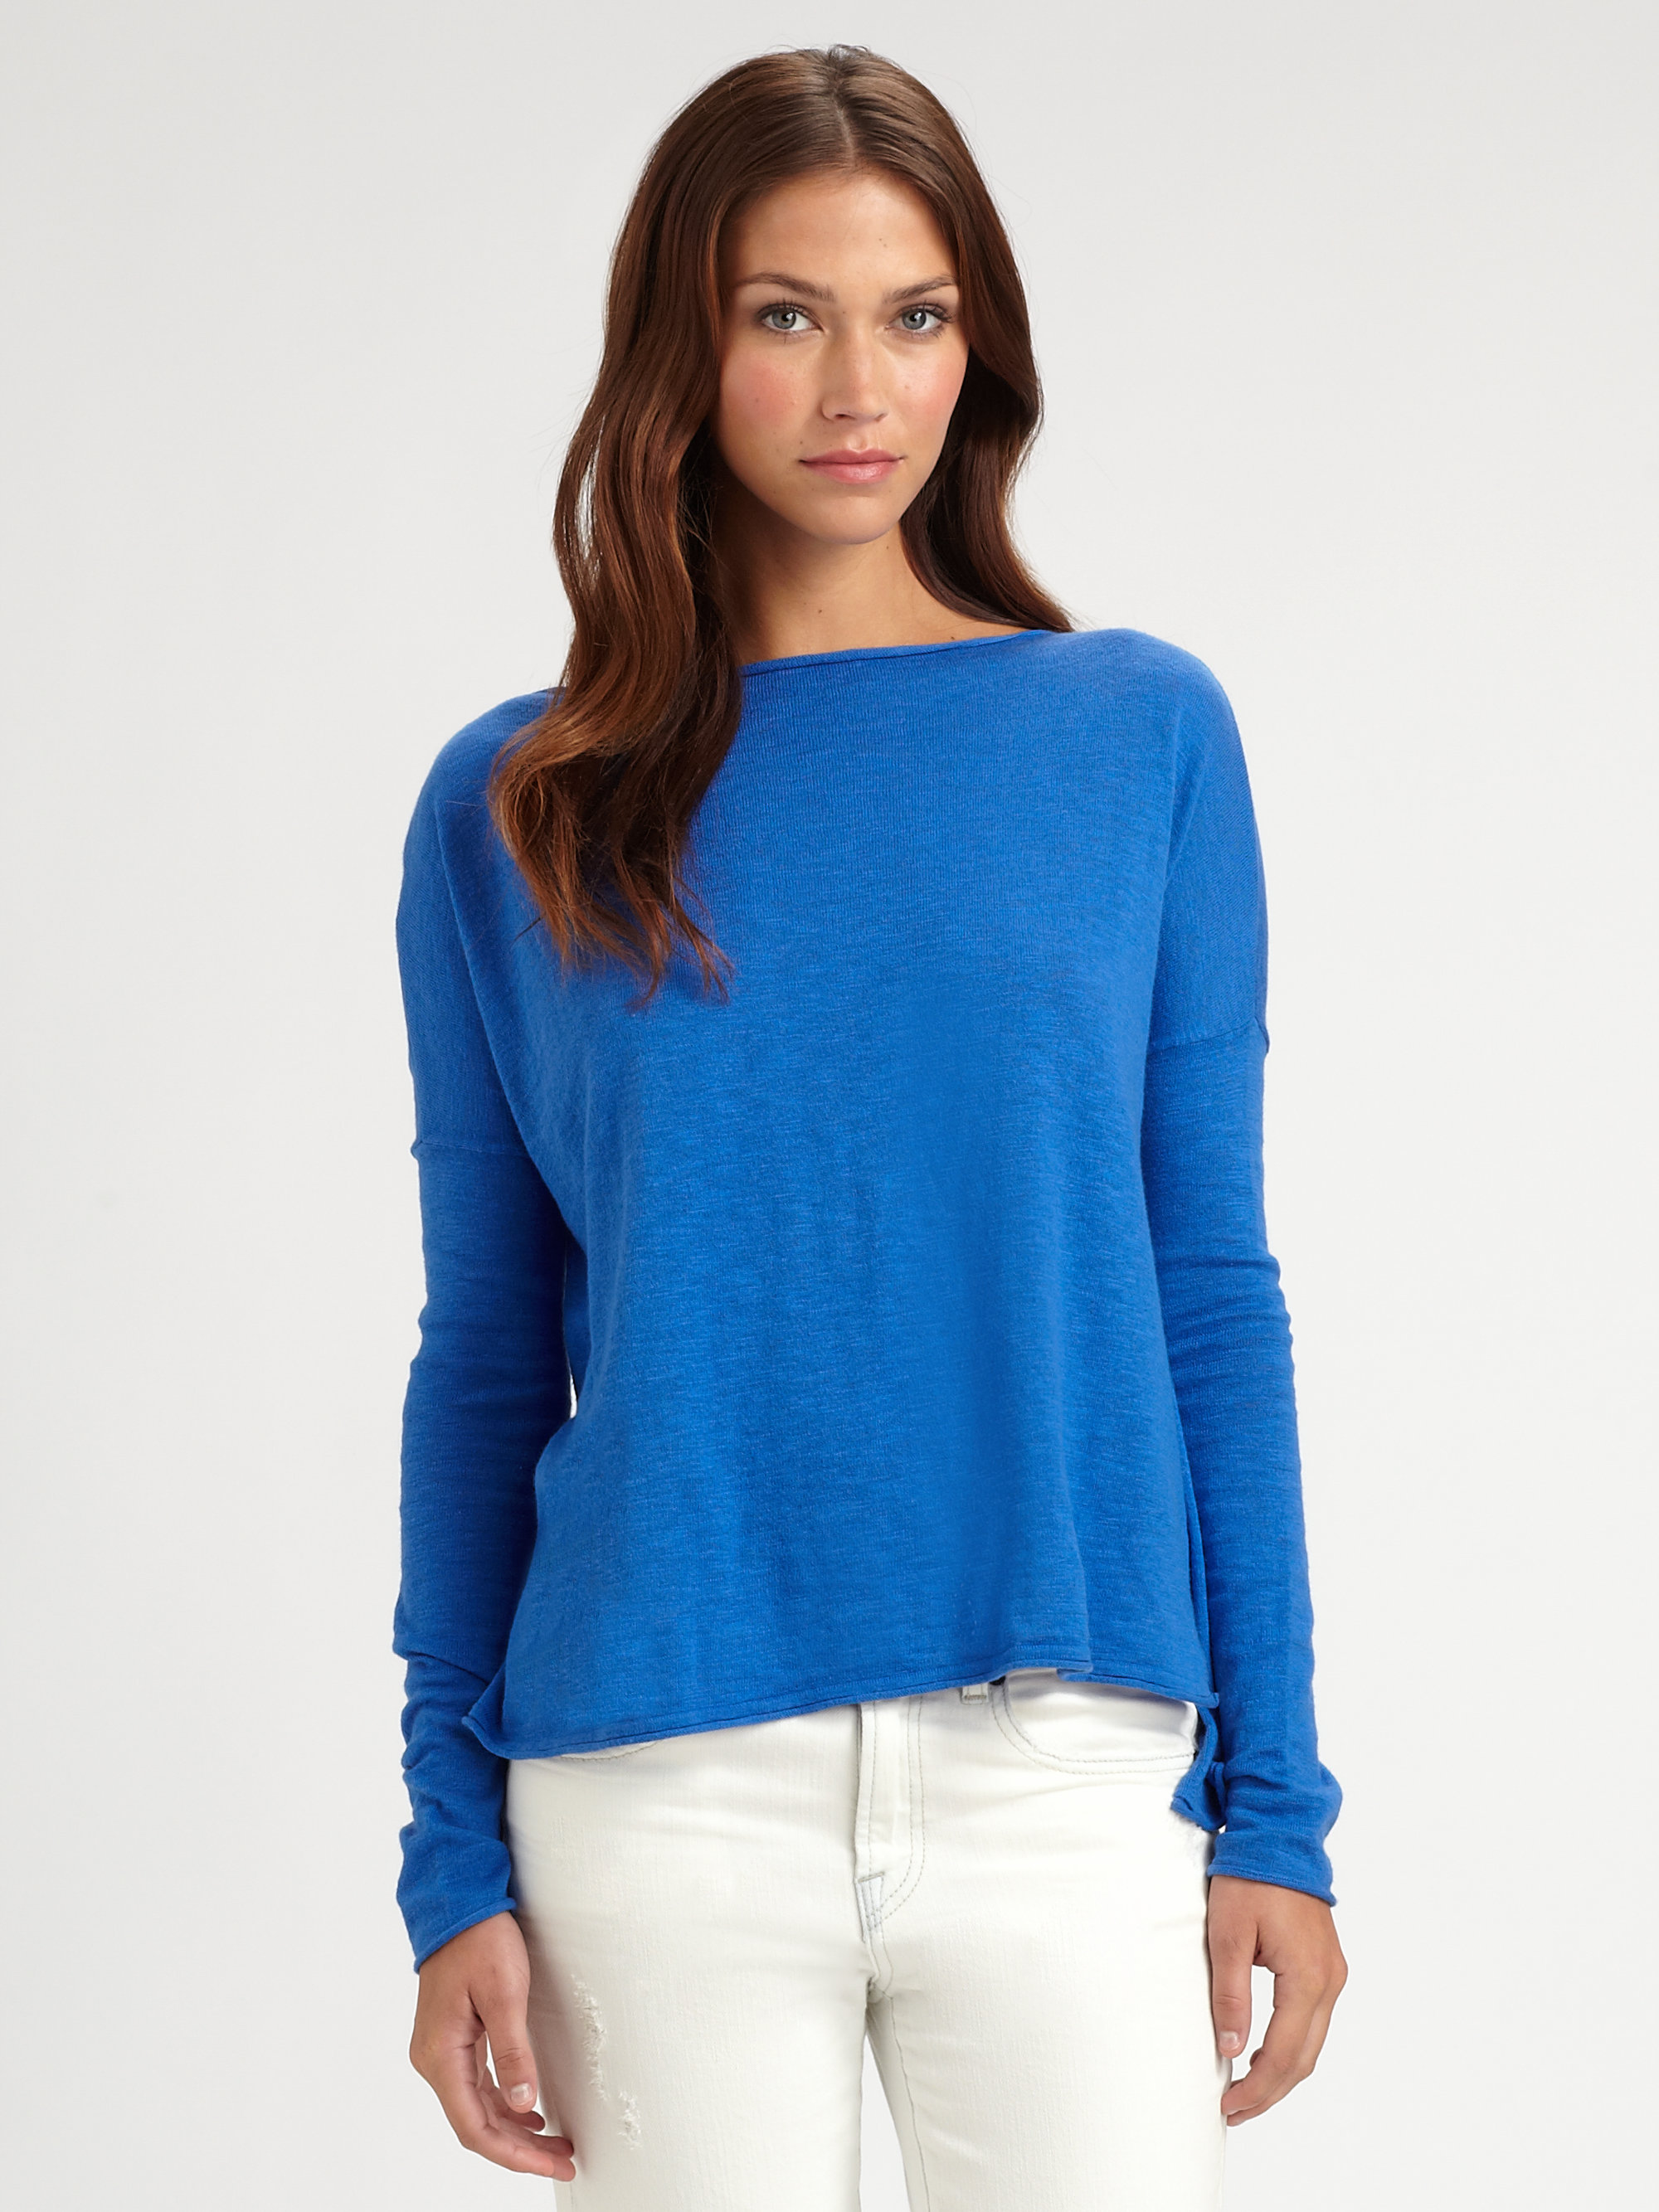 Vince Oversized Boatneck Slub Cotton Sweater in Blue | Lyst